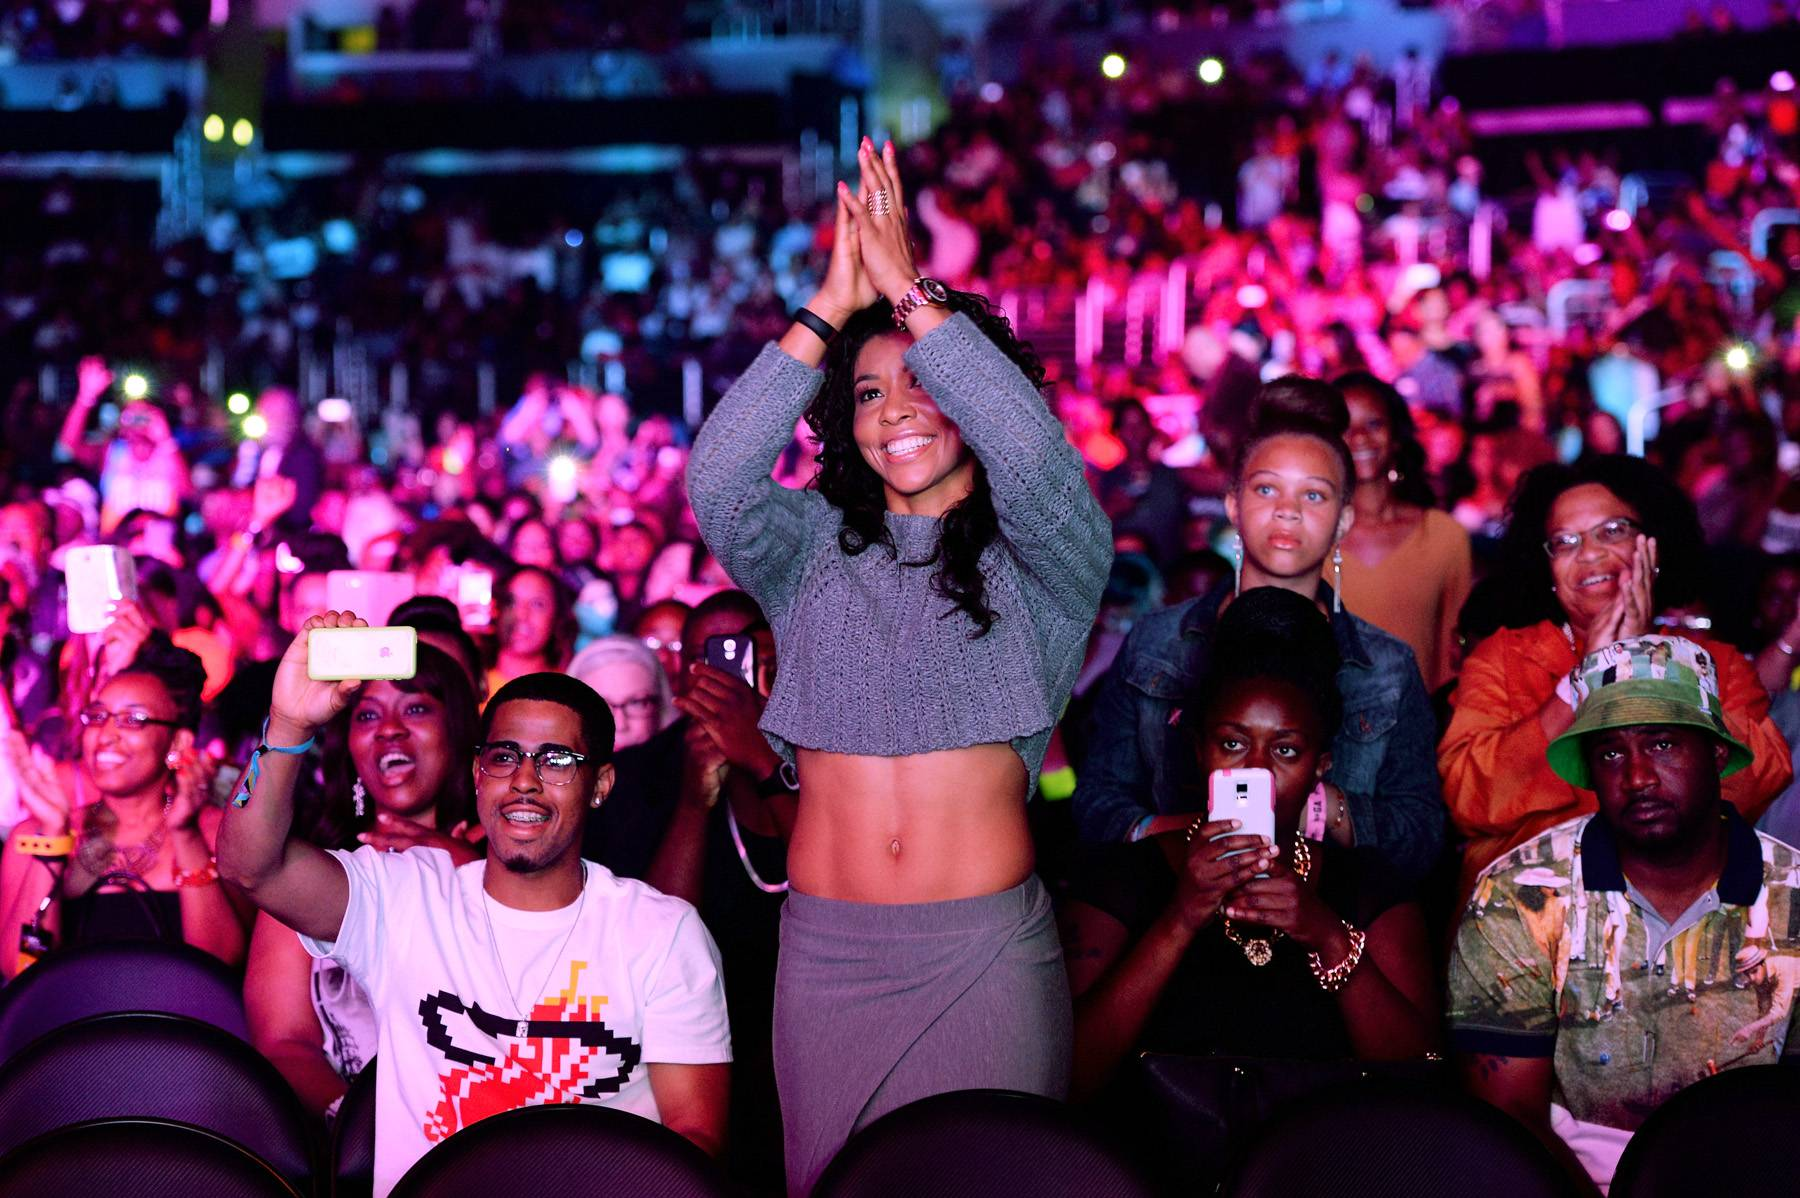 Crowd Appreciation - The audience enjoyed an array of good music throughout the night.(Photo by Earl Gibson/BET/Getty Images for BET)